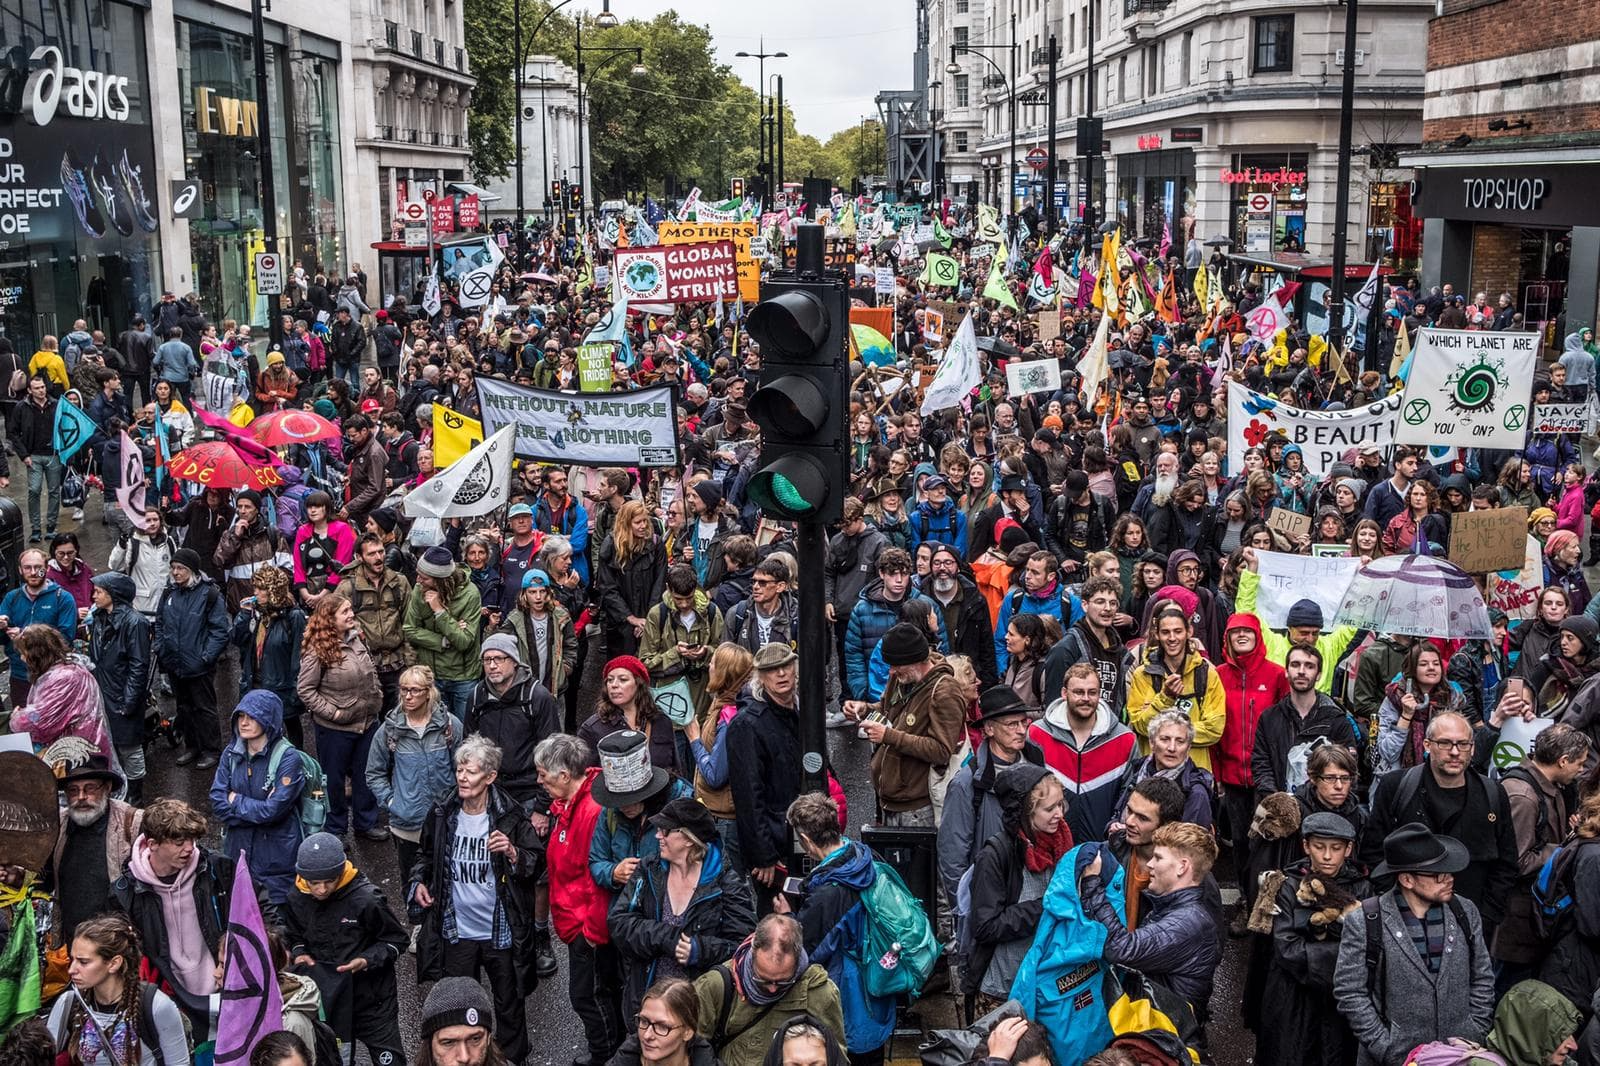 A massive march with thousands of rebels on Oxford Street in London. There are banners which read 'Global Women's Strike' and 'Without Nature We Are Nothing'.